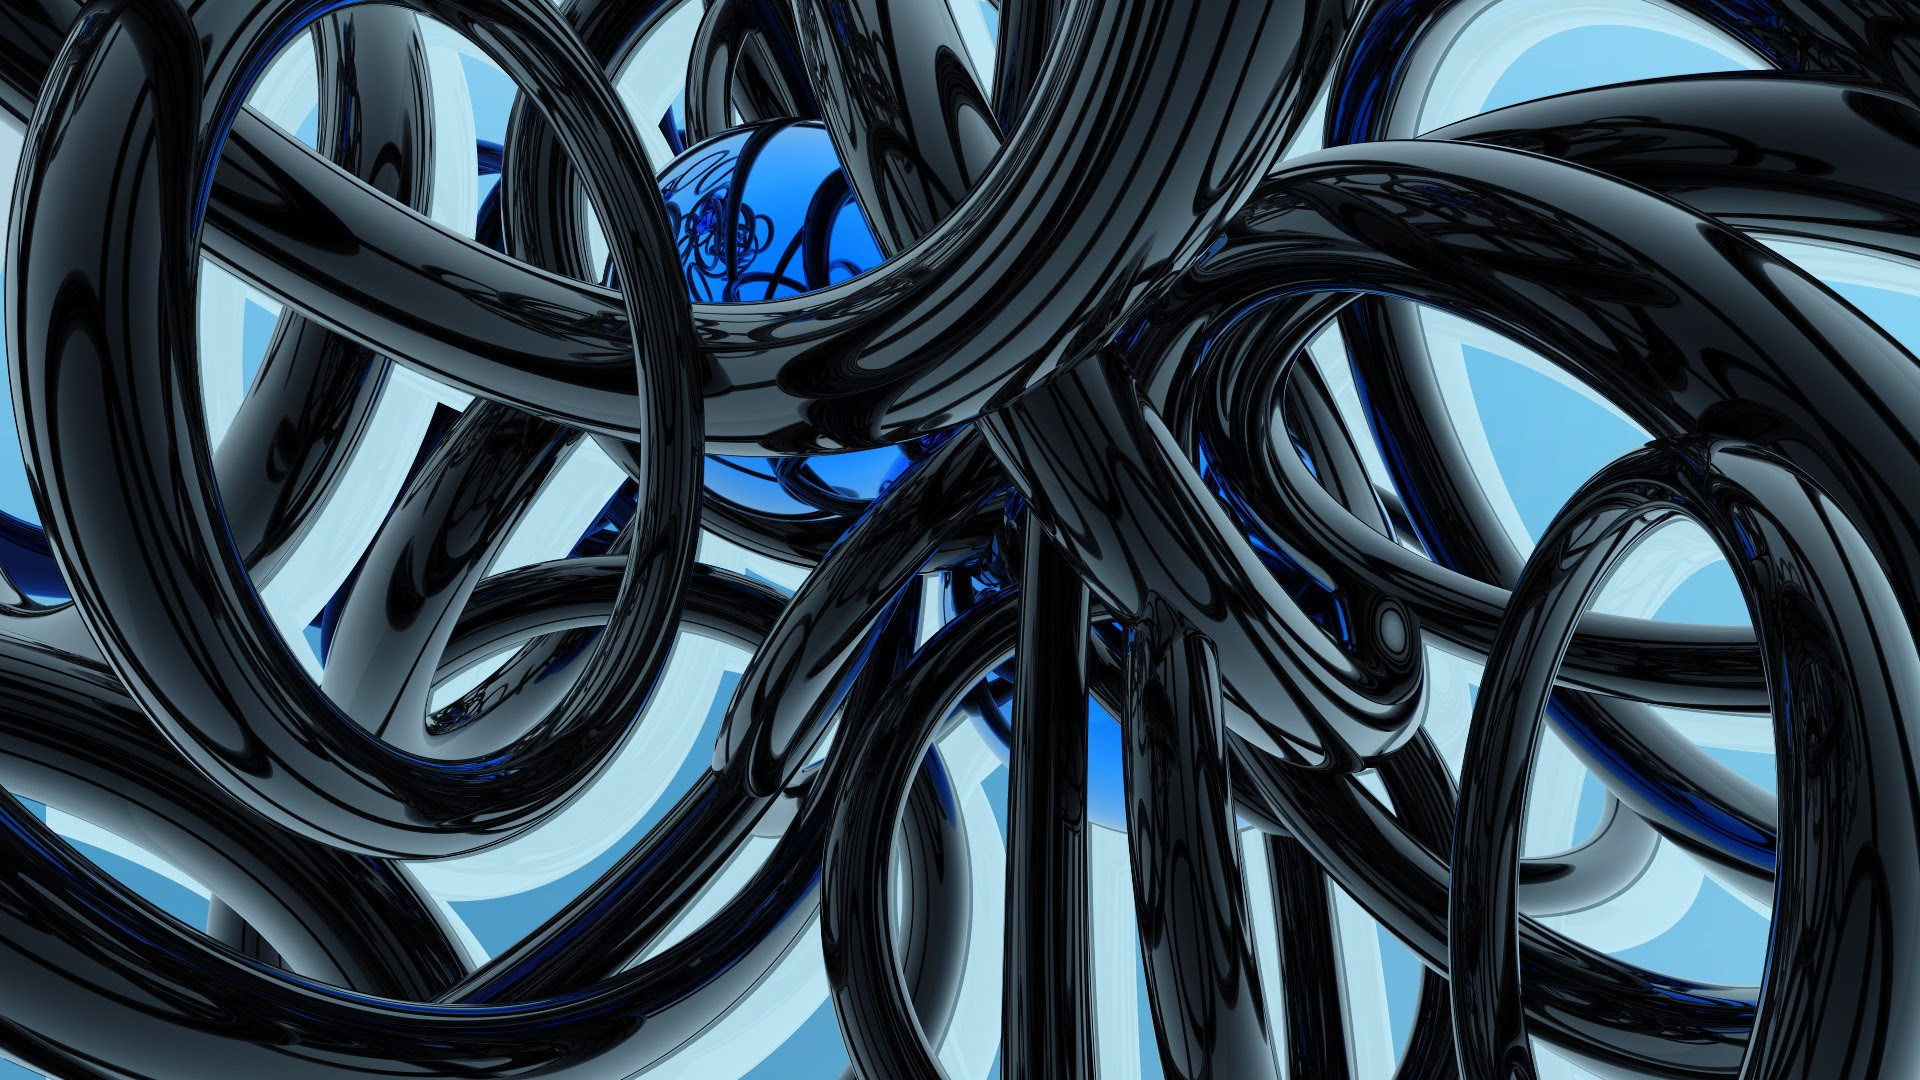 Black And Blue Wallpaper Abstract 3d Wallpapers In Jpg Format For